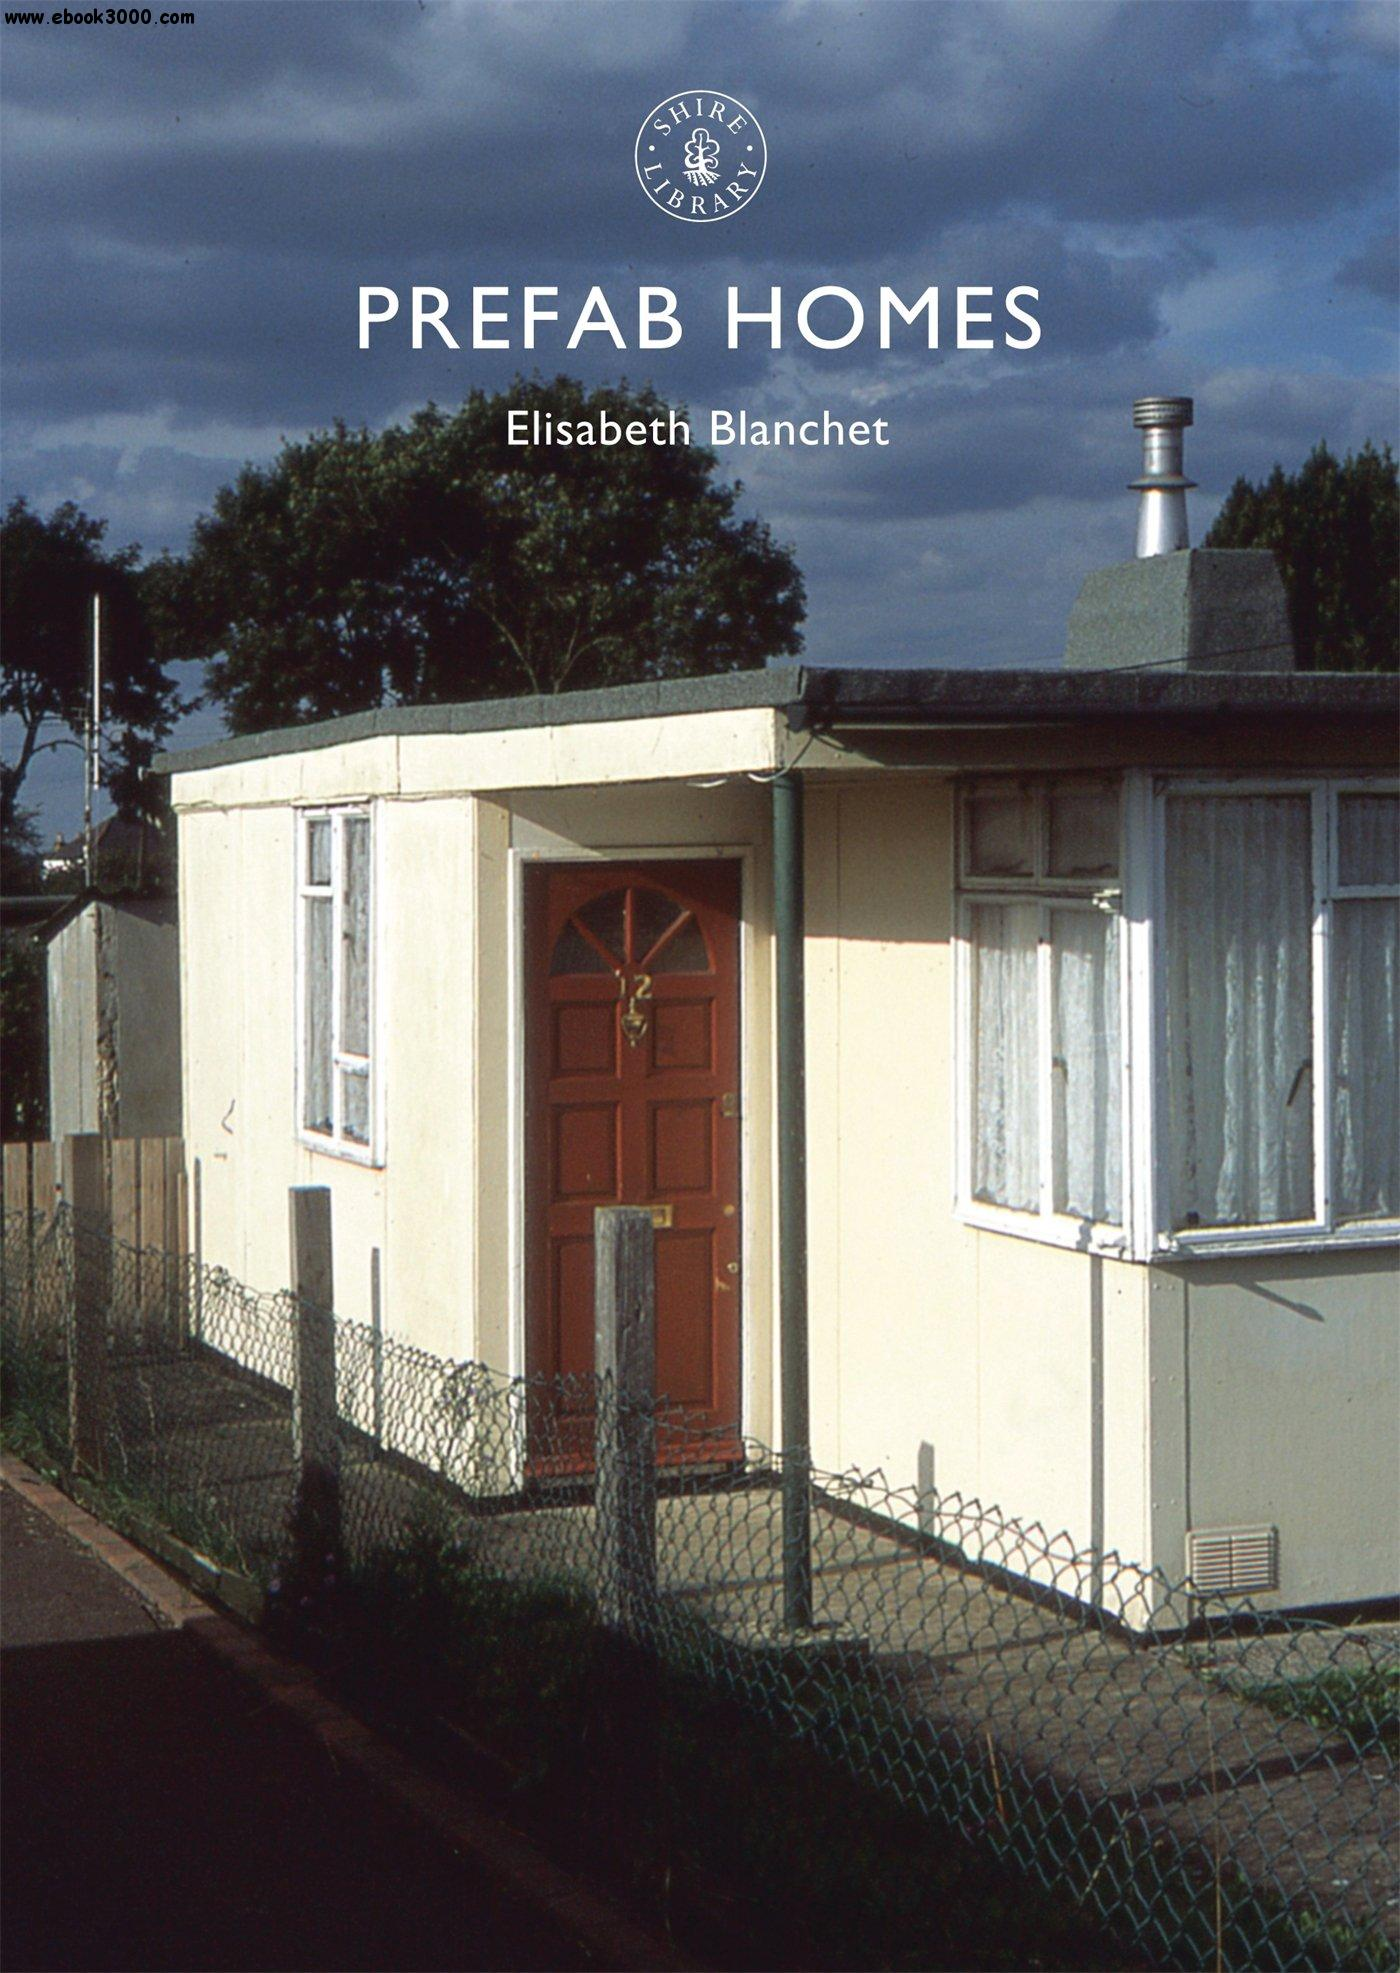 Prefab Homes (Shire Library) free download